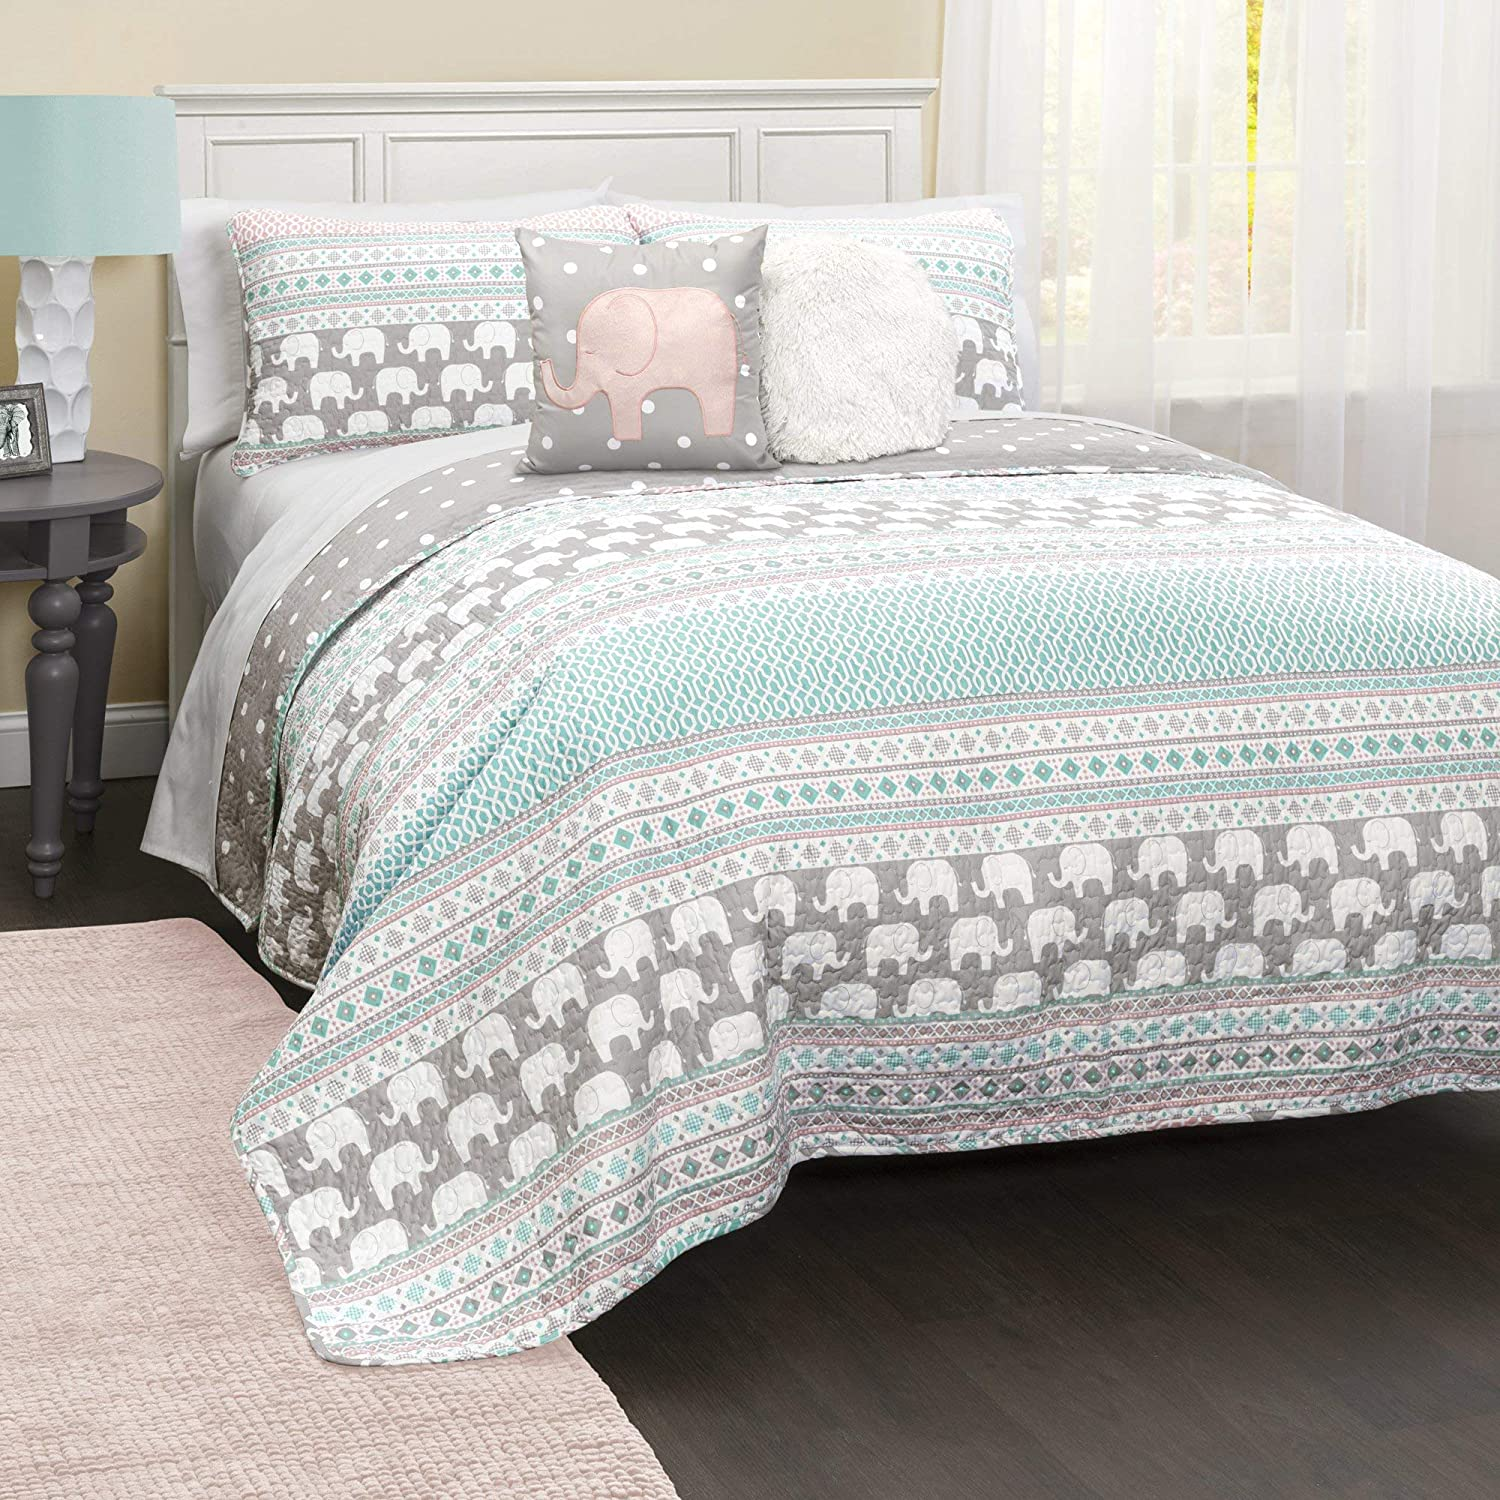 Lush Decor C43202P15-000 4 Piece Elephant Stripe Quilt Set, Full/Queen, Turquoise/Pink Triangle Home Fashions